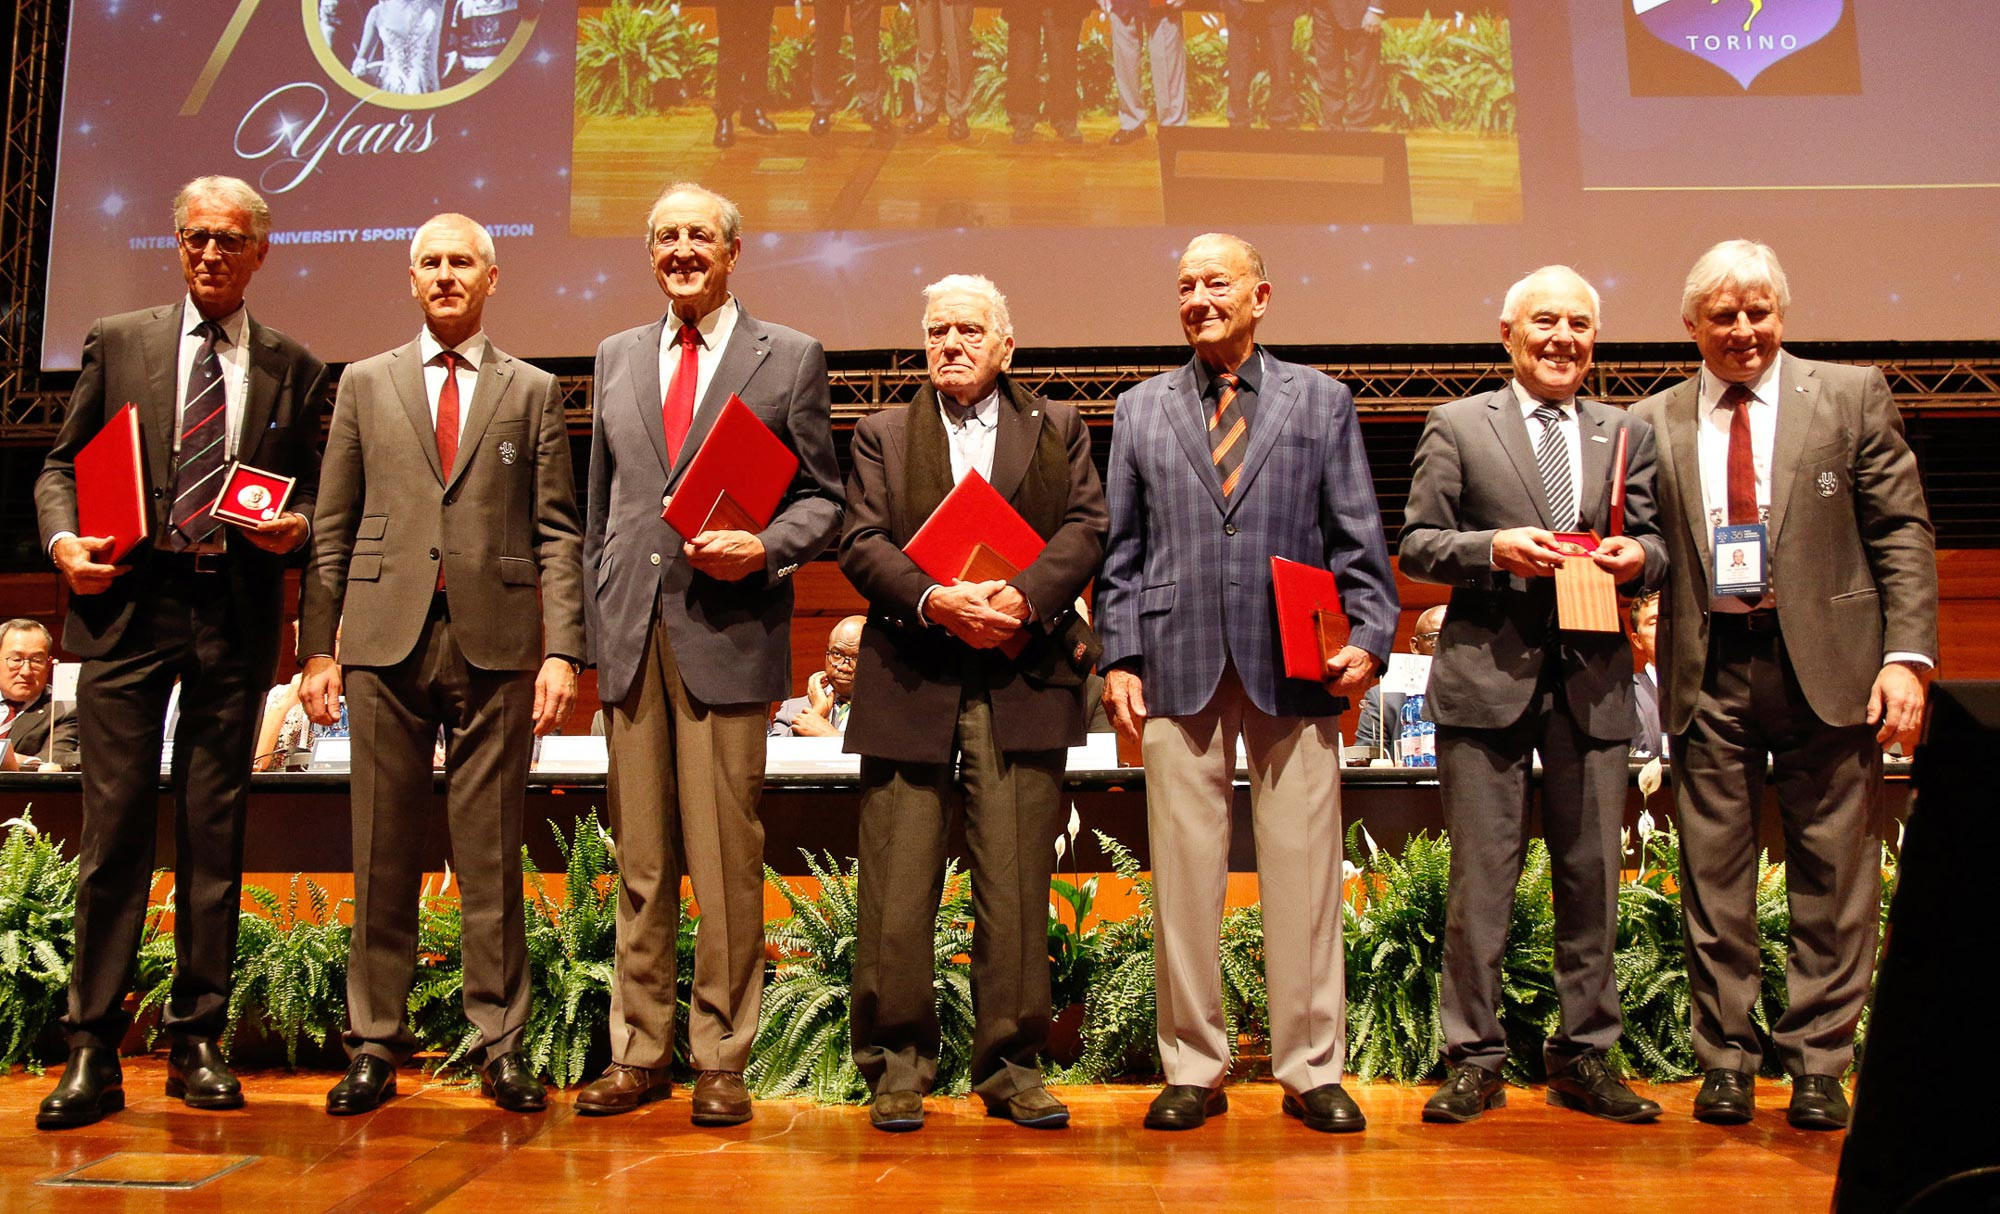 The inaugural winners of the Primo Nebiolo medals accept the congratulations of the General Assembly ©FISU